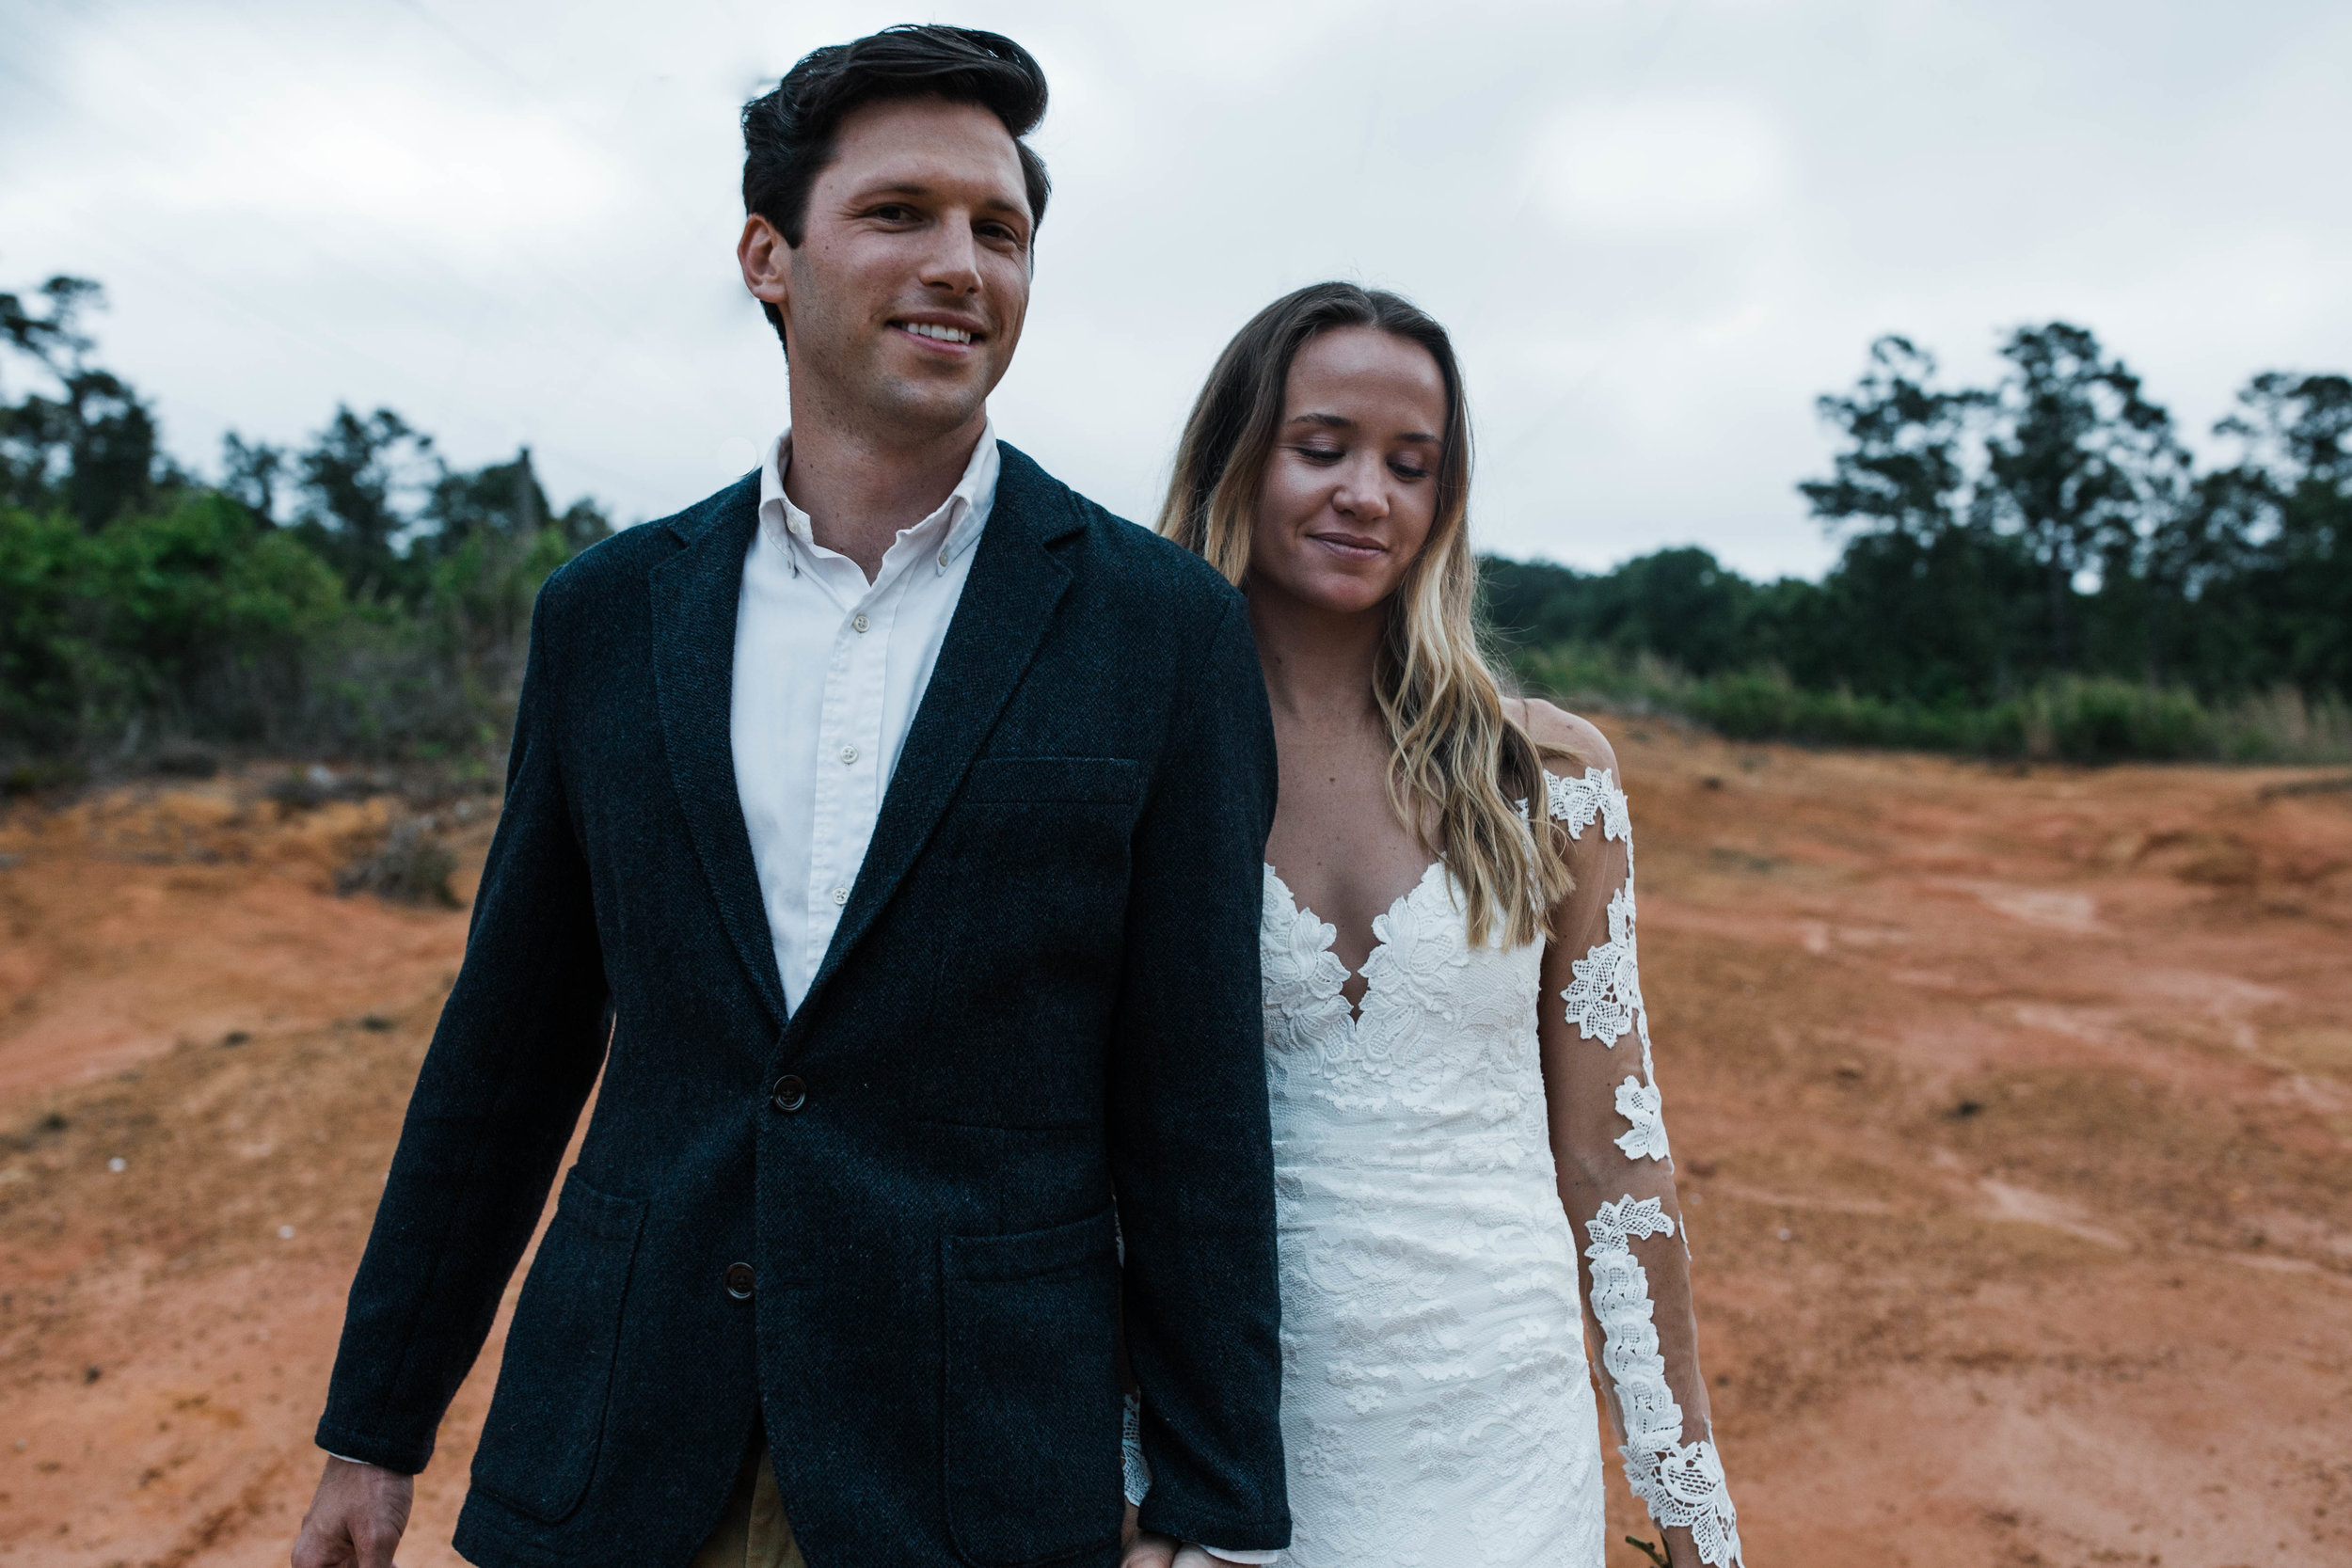 You wouldnt believe this elopement is in Florida, it looks like a mini utah